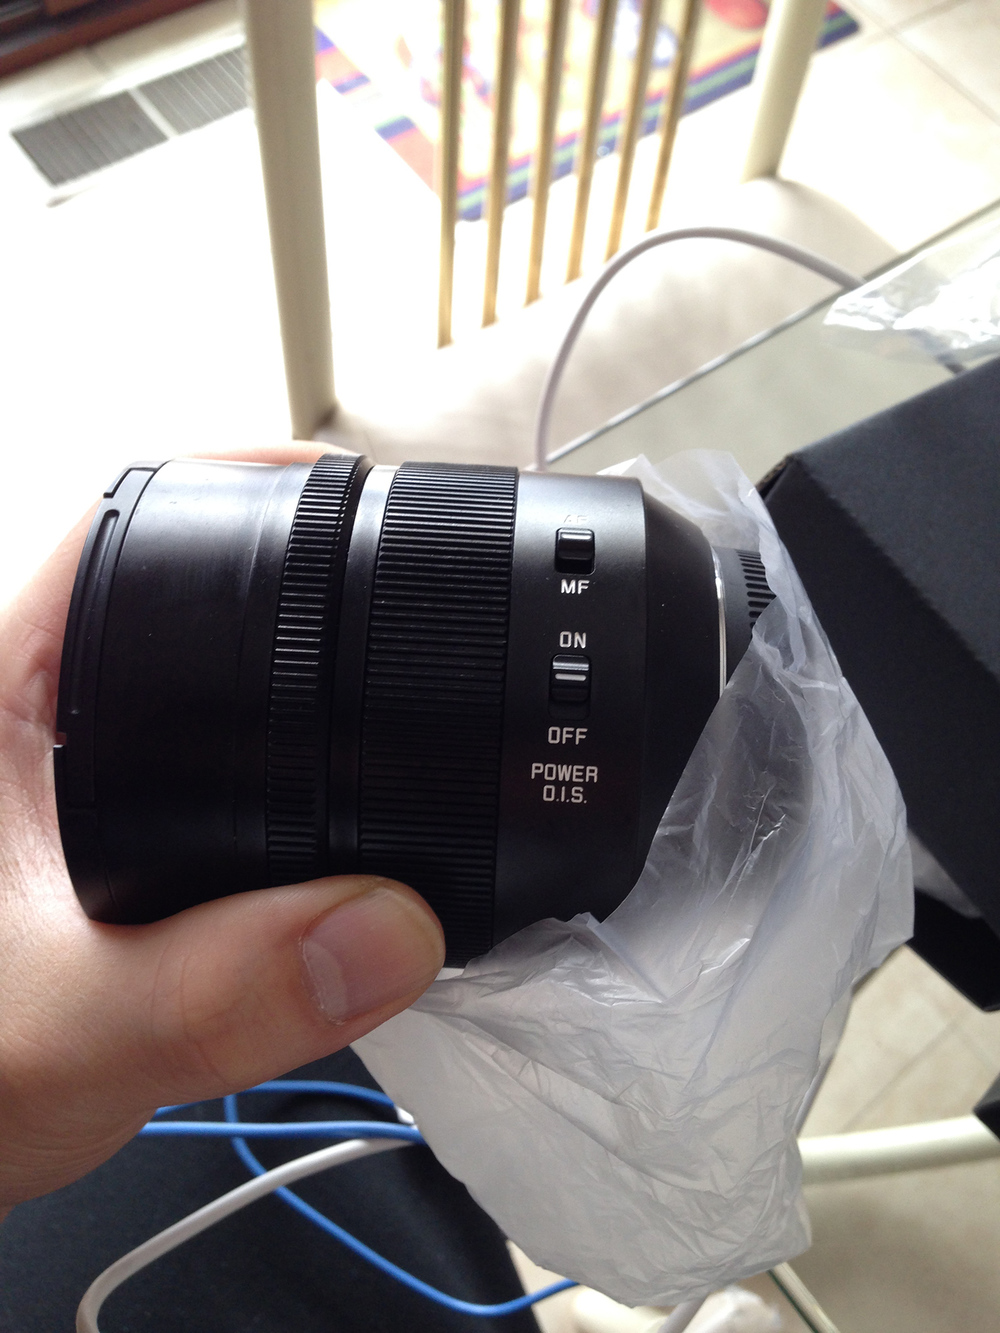 Overall the lens was packaged very nicely.